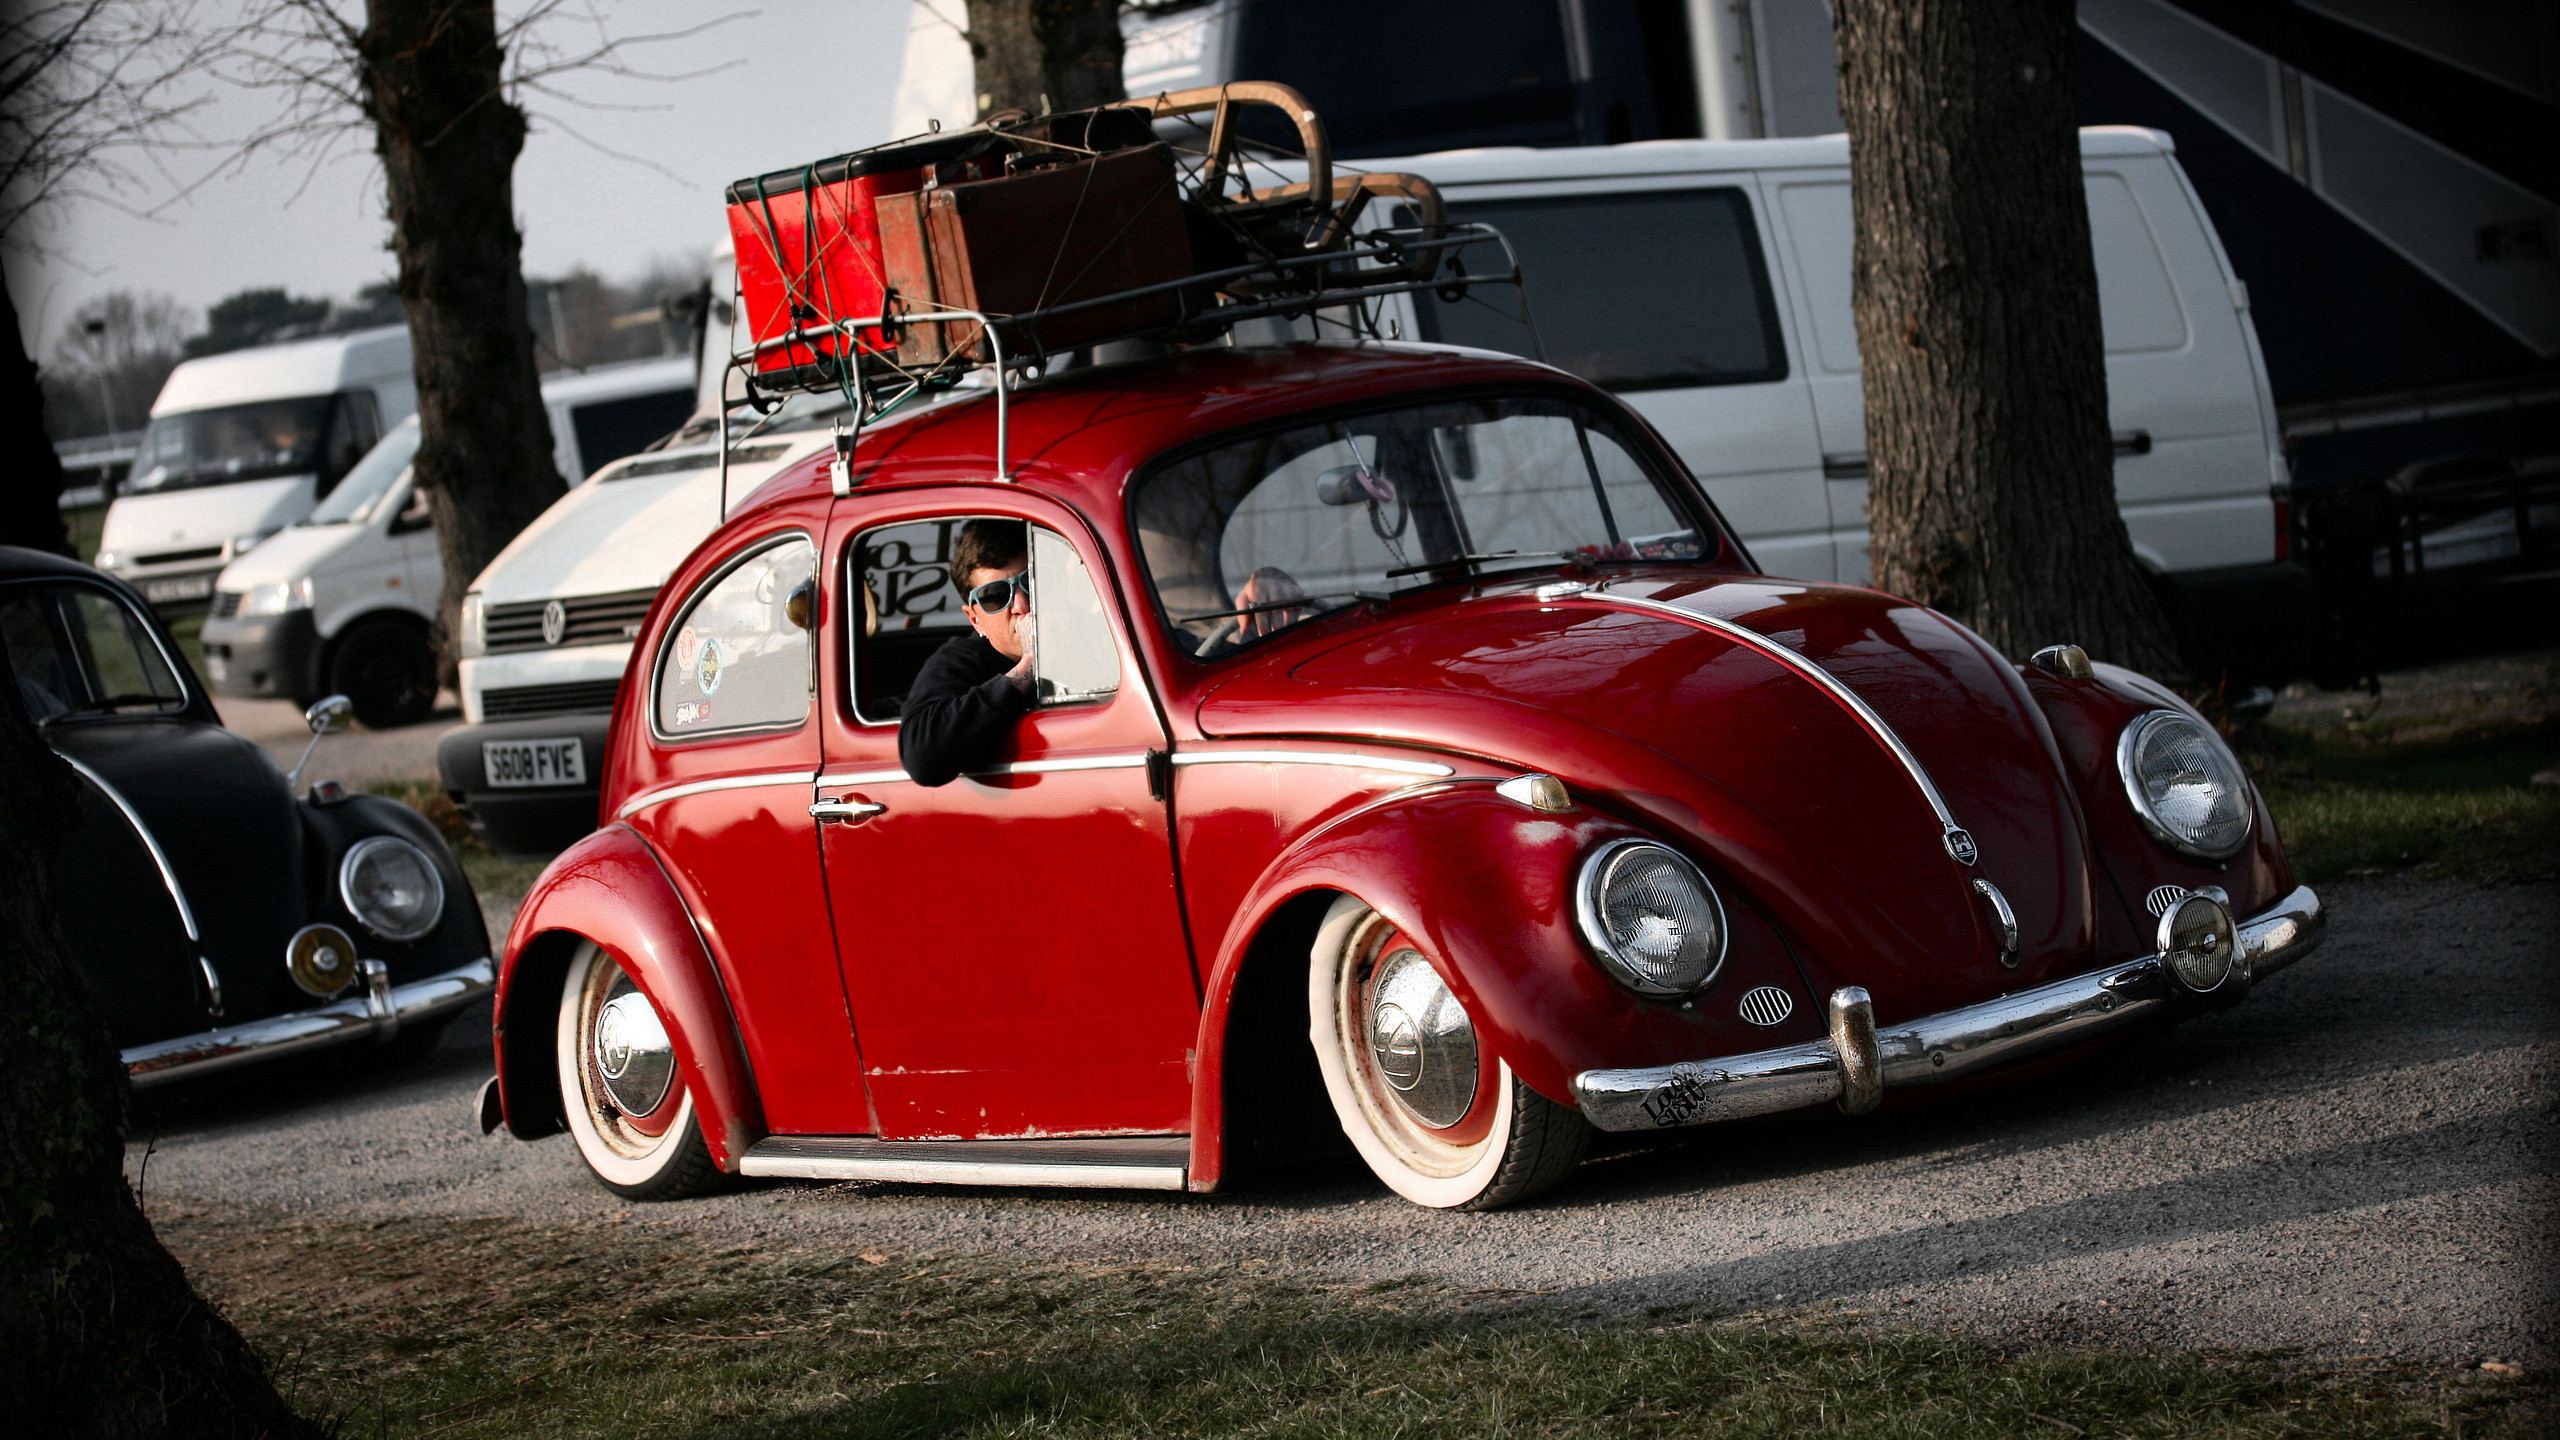 88 Volkswagen Beetle HD Wallpapers | Backgrounds – Wallpaper Abyss – Page 3